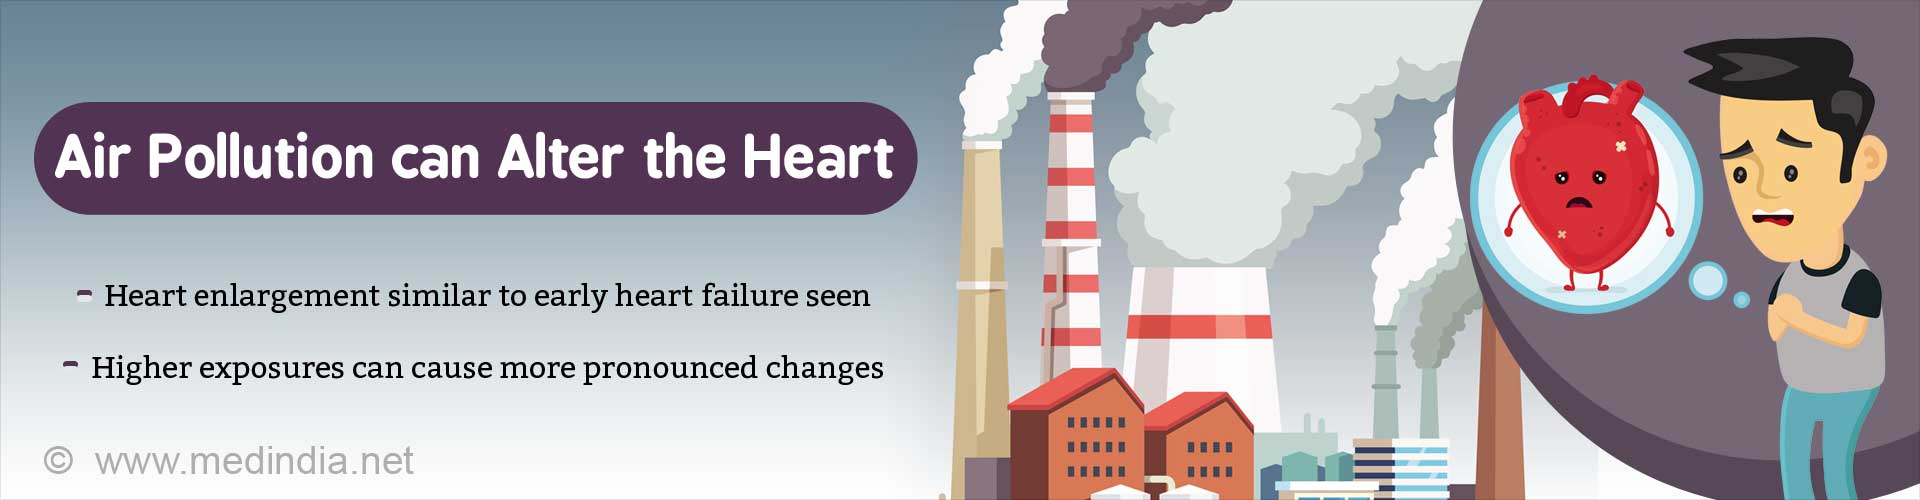 Heart Remodeling Happens Even at Low Levels of Air Pollution